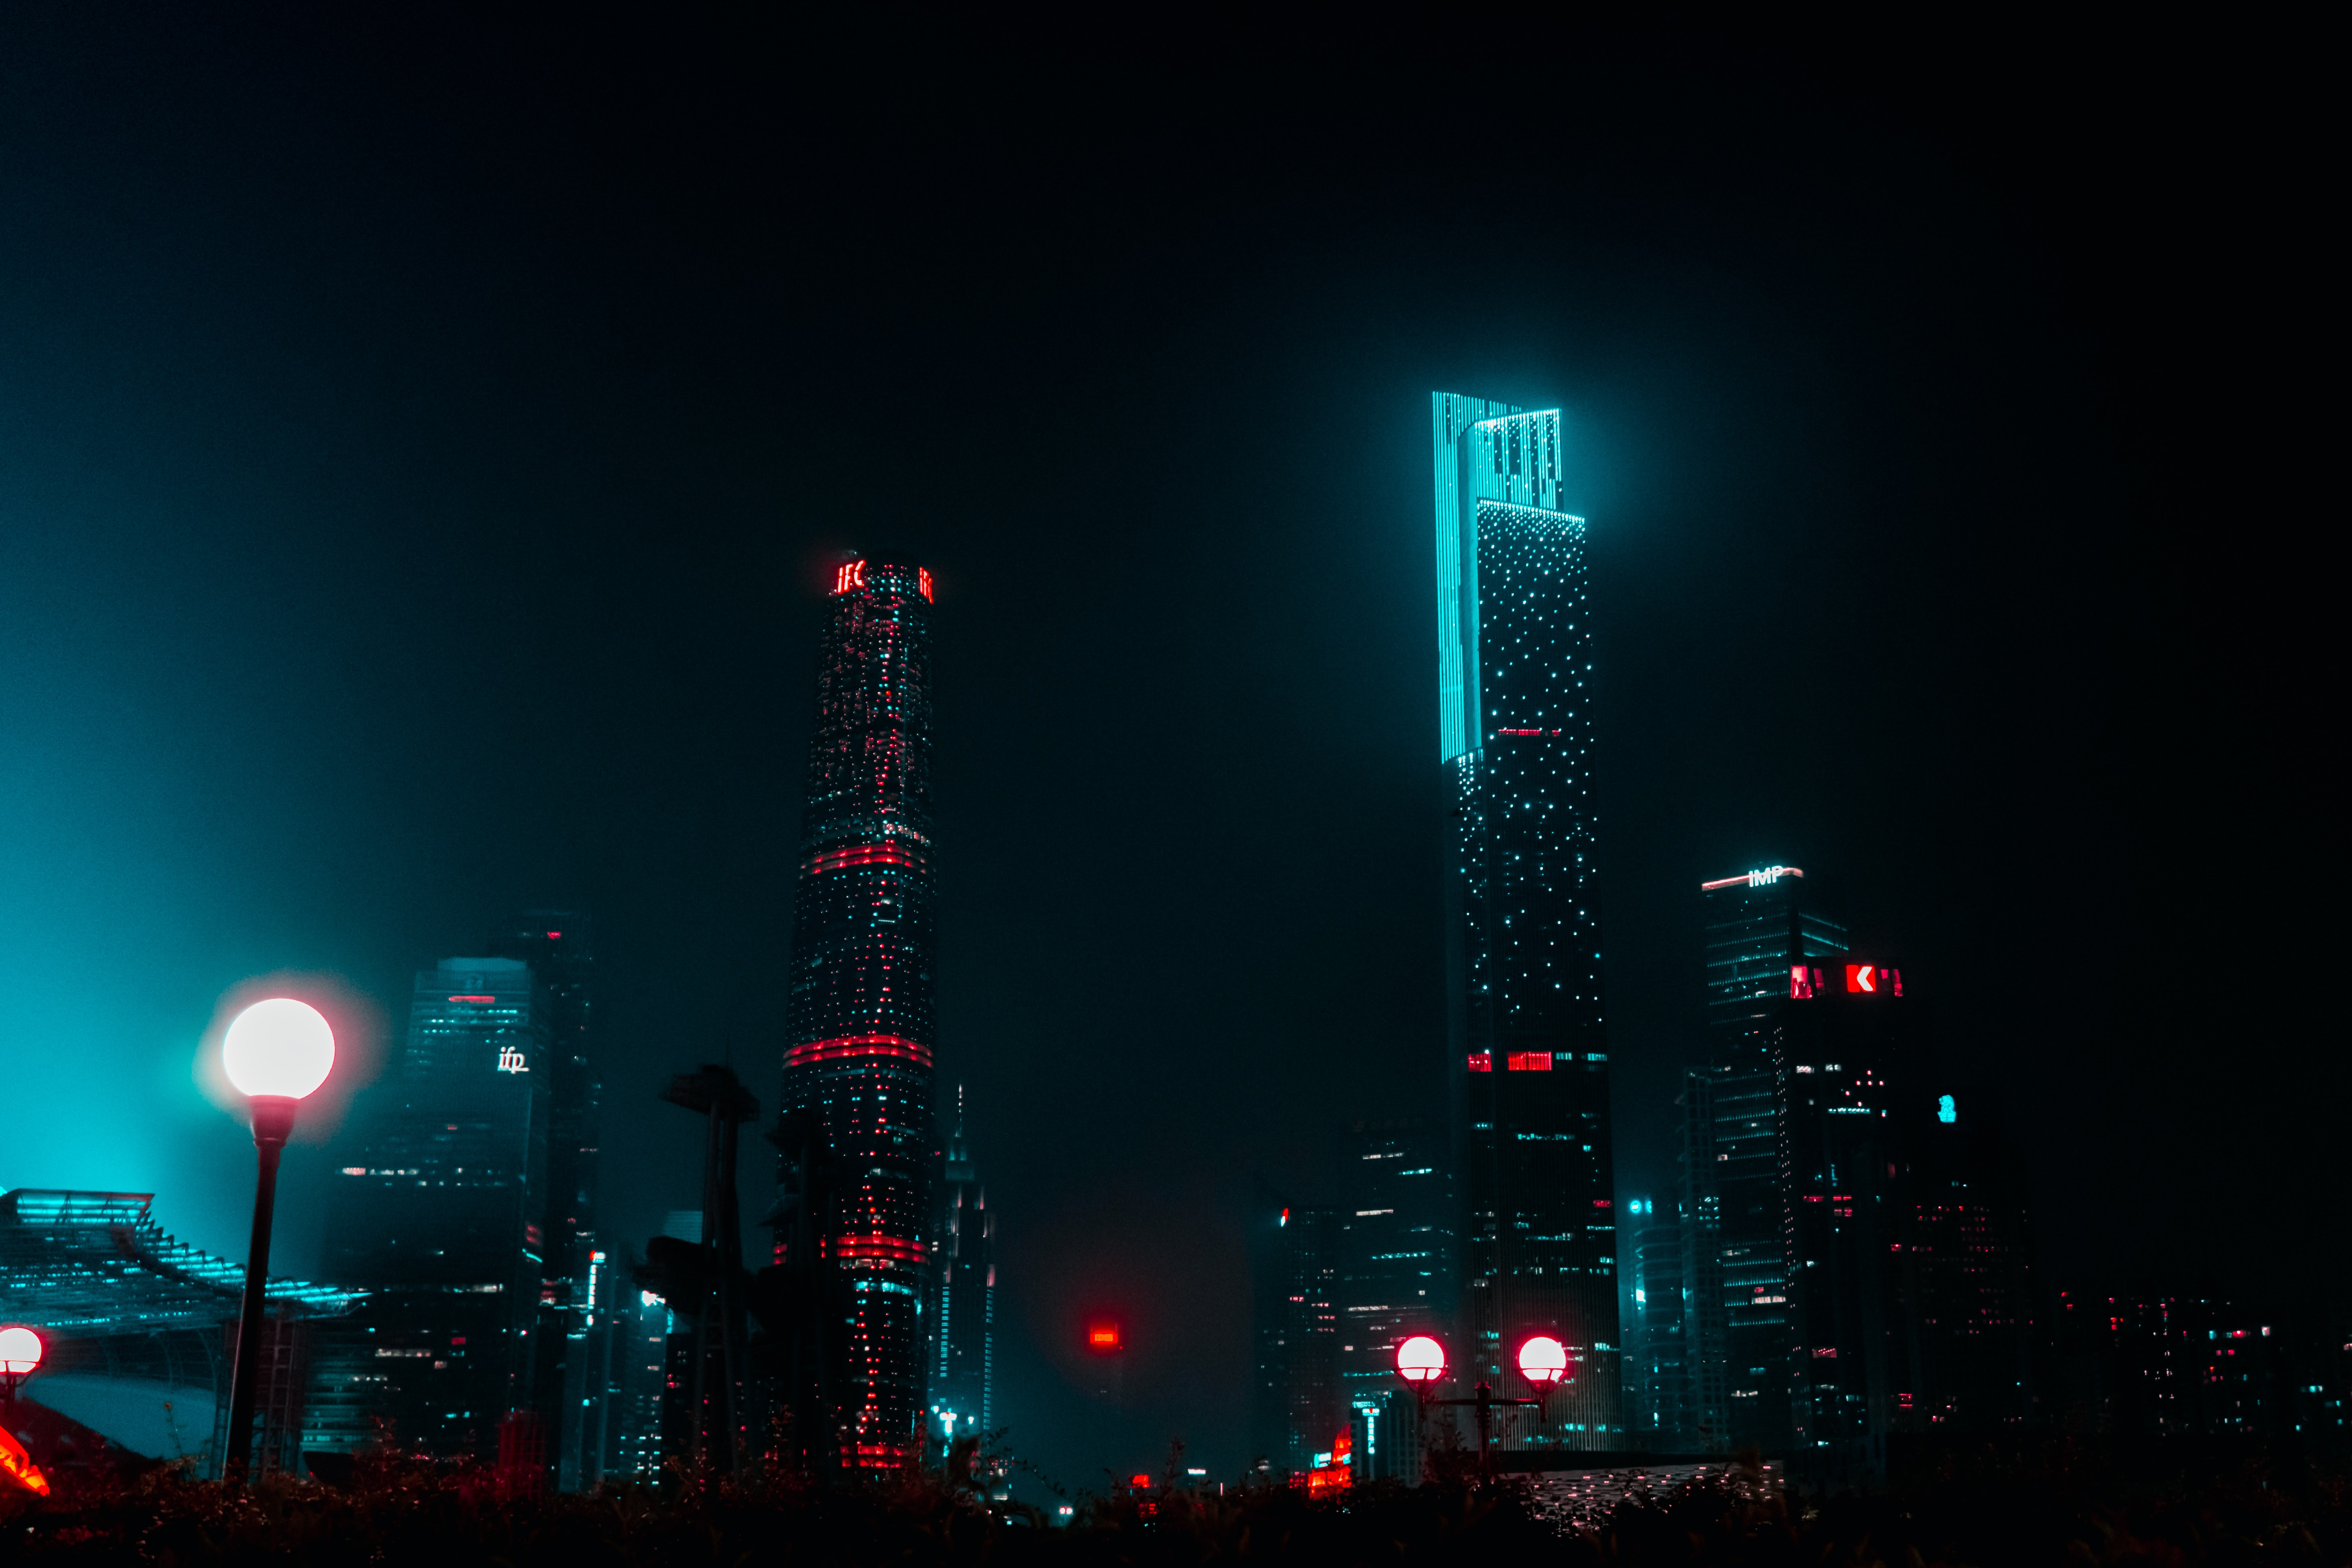 high-rise buildings at nighttime